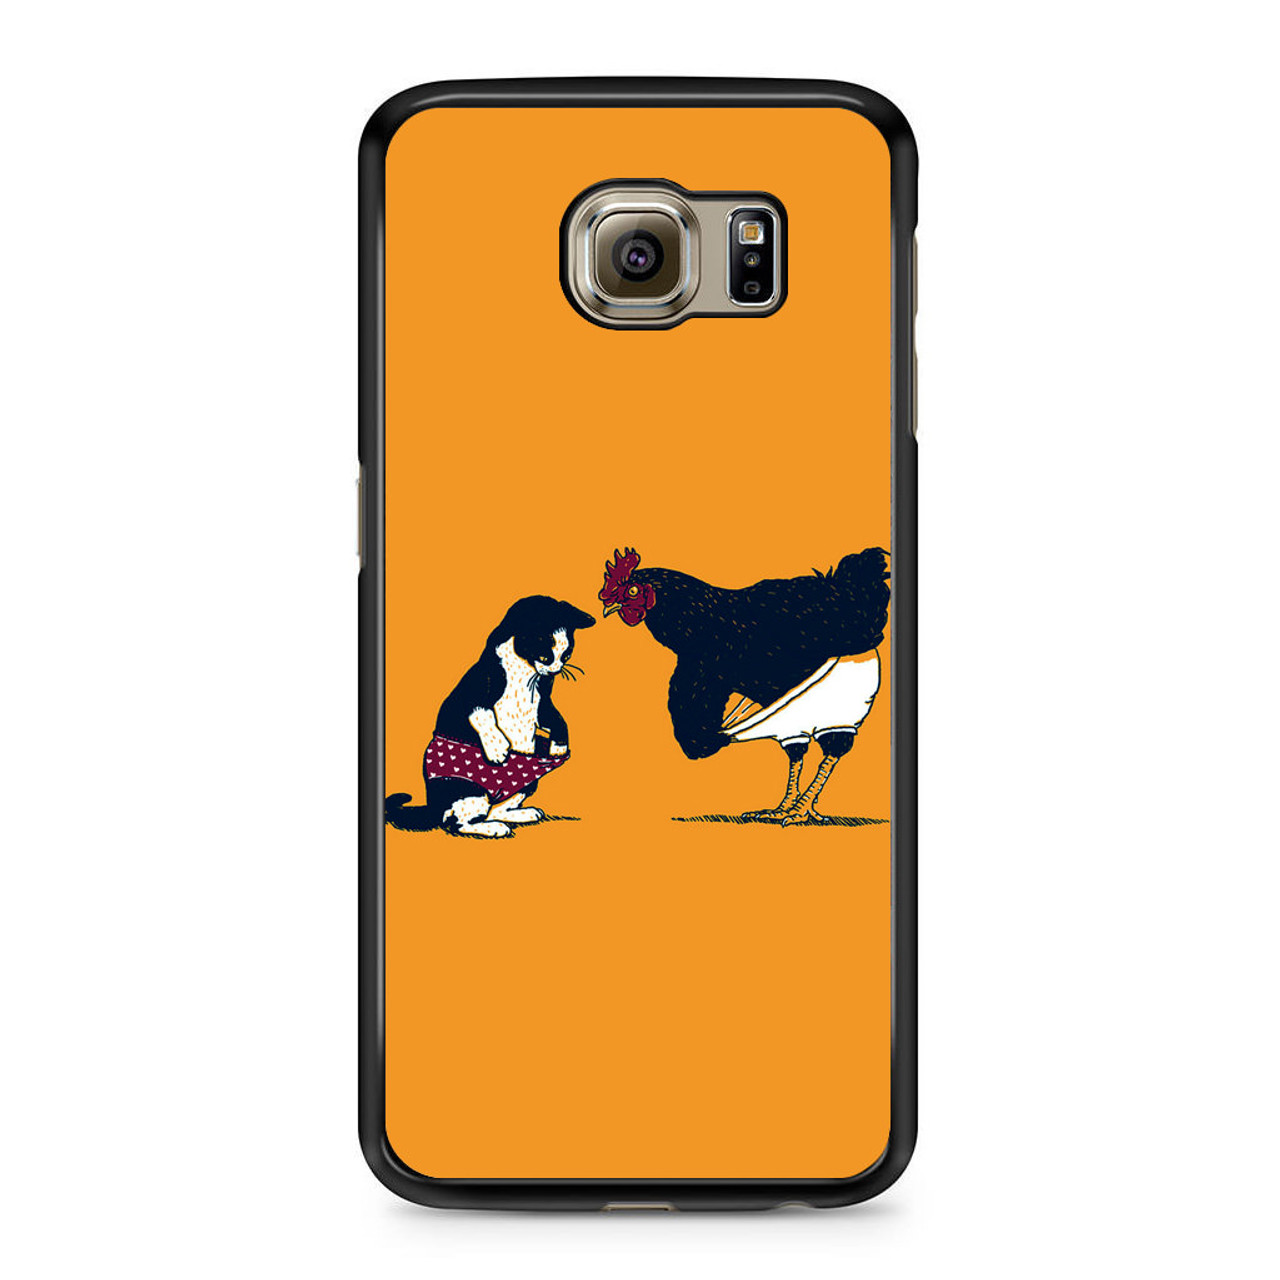 new styles 0bb91 8a557 Cat Chicken Yellow Underwear Cute Samsung Galaxy S6 Case